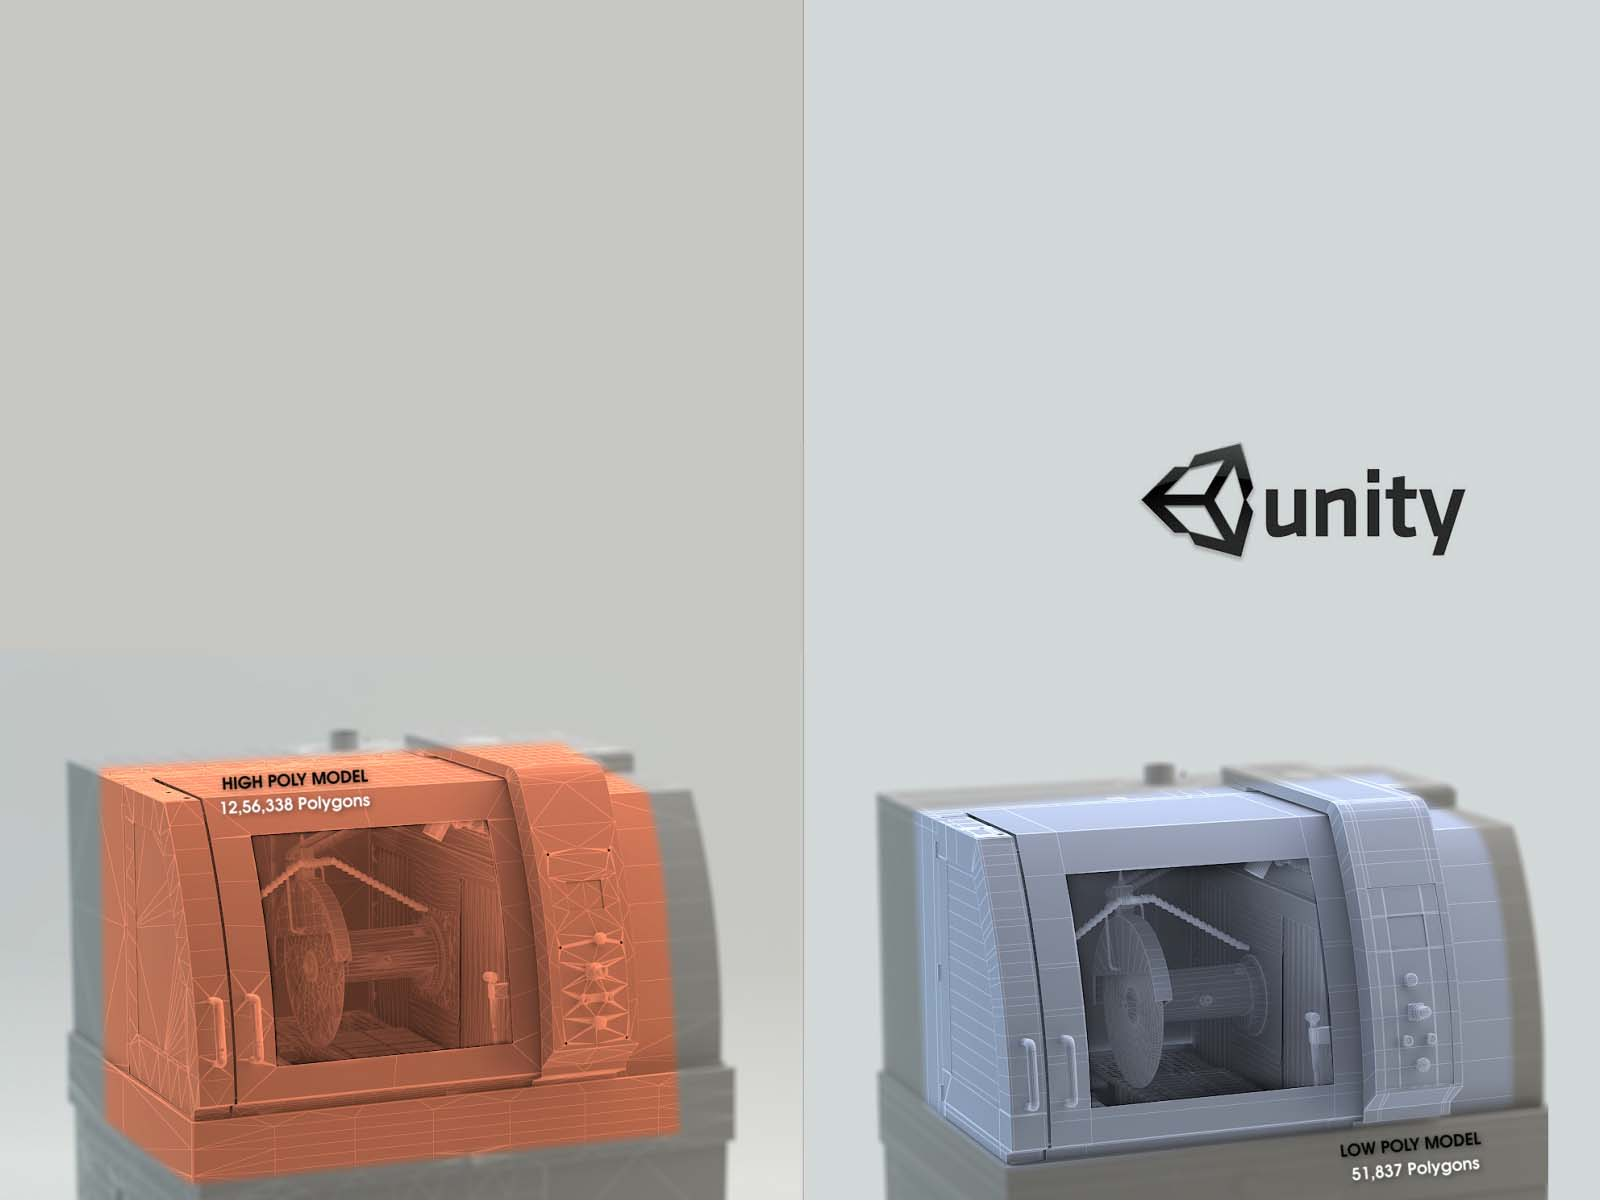 High Poly To Low Poly Modeling